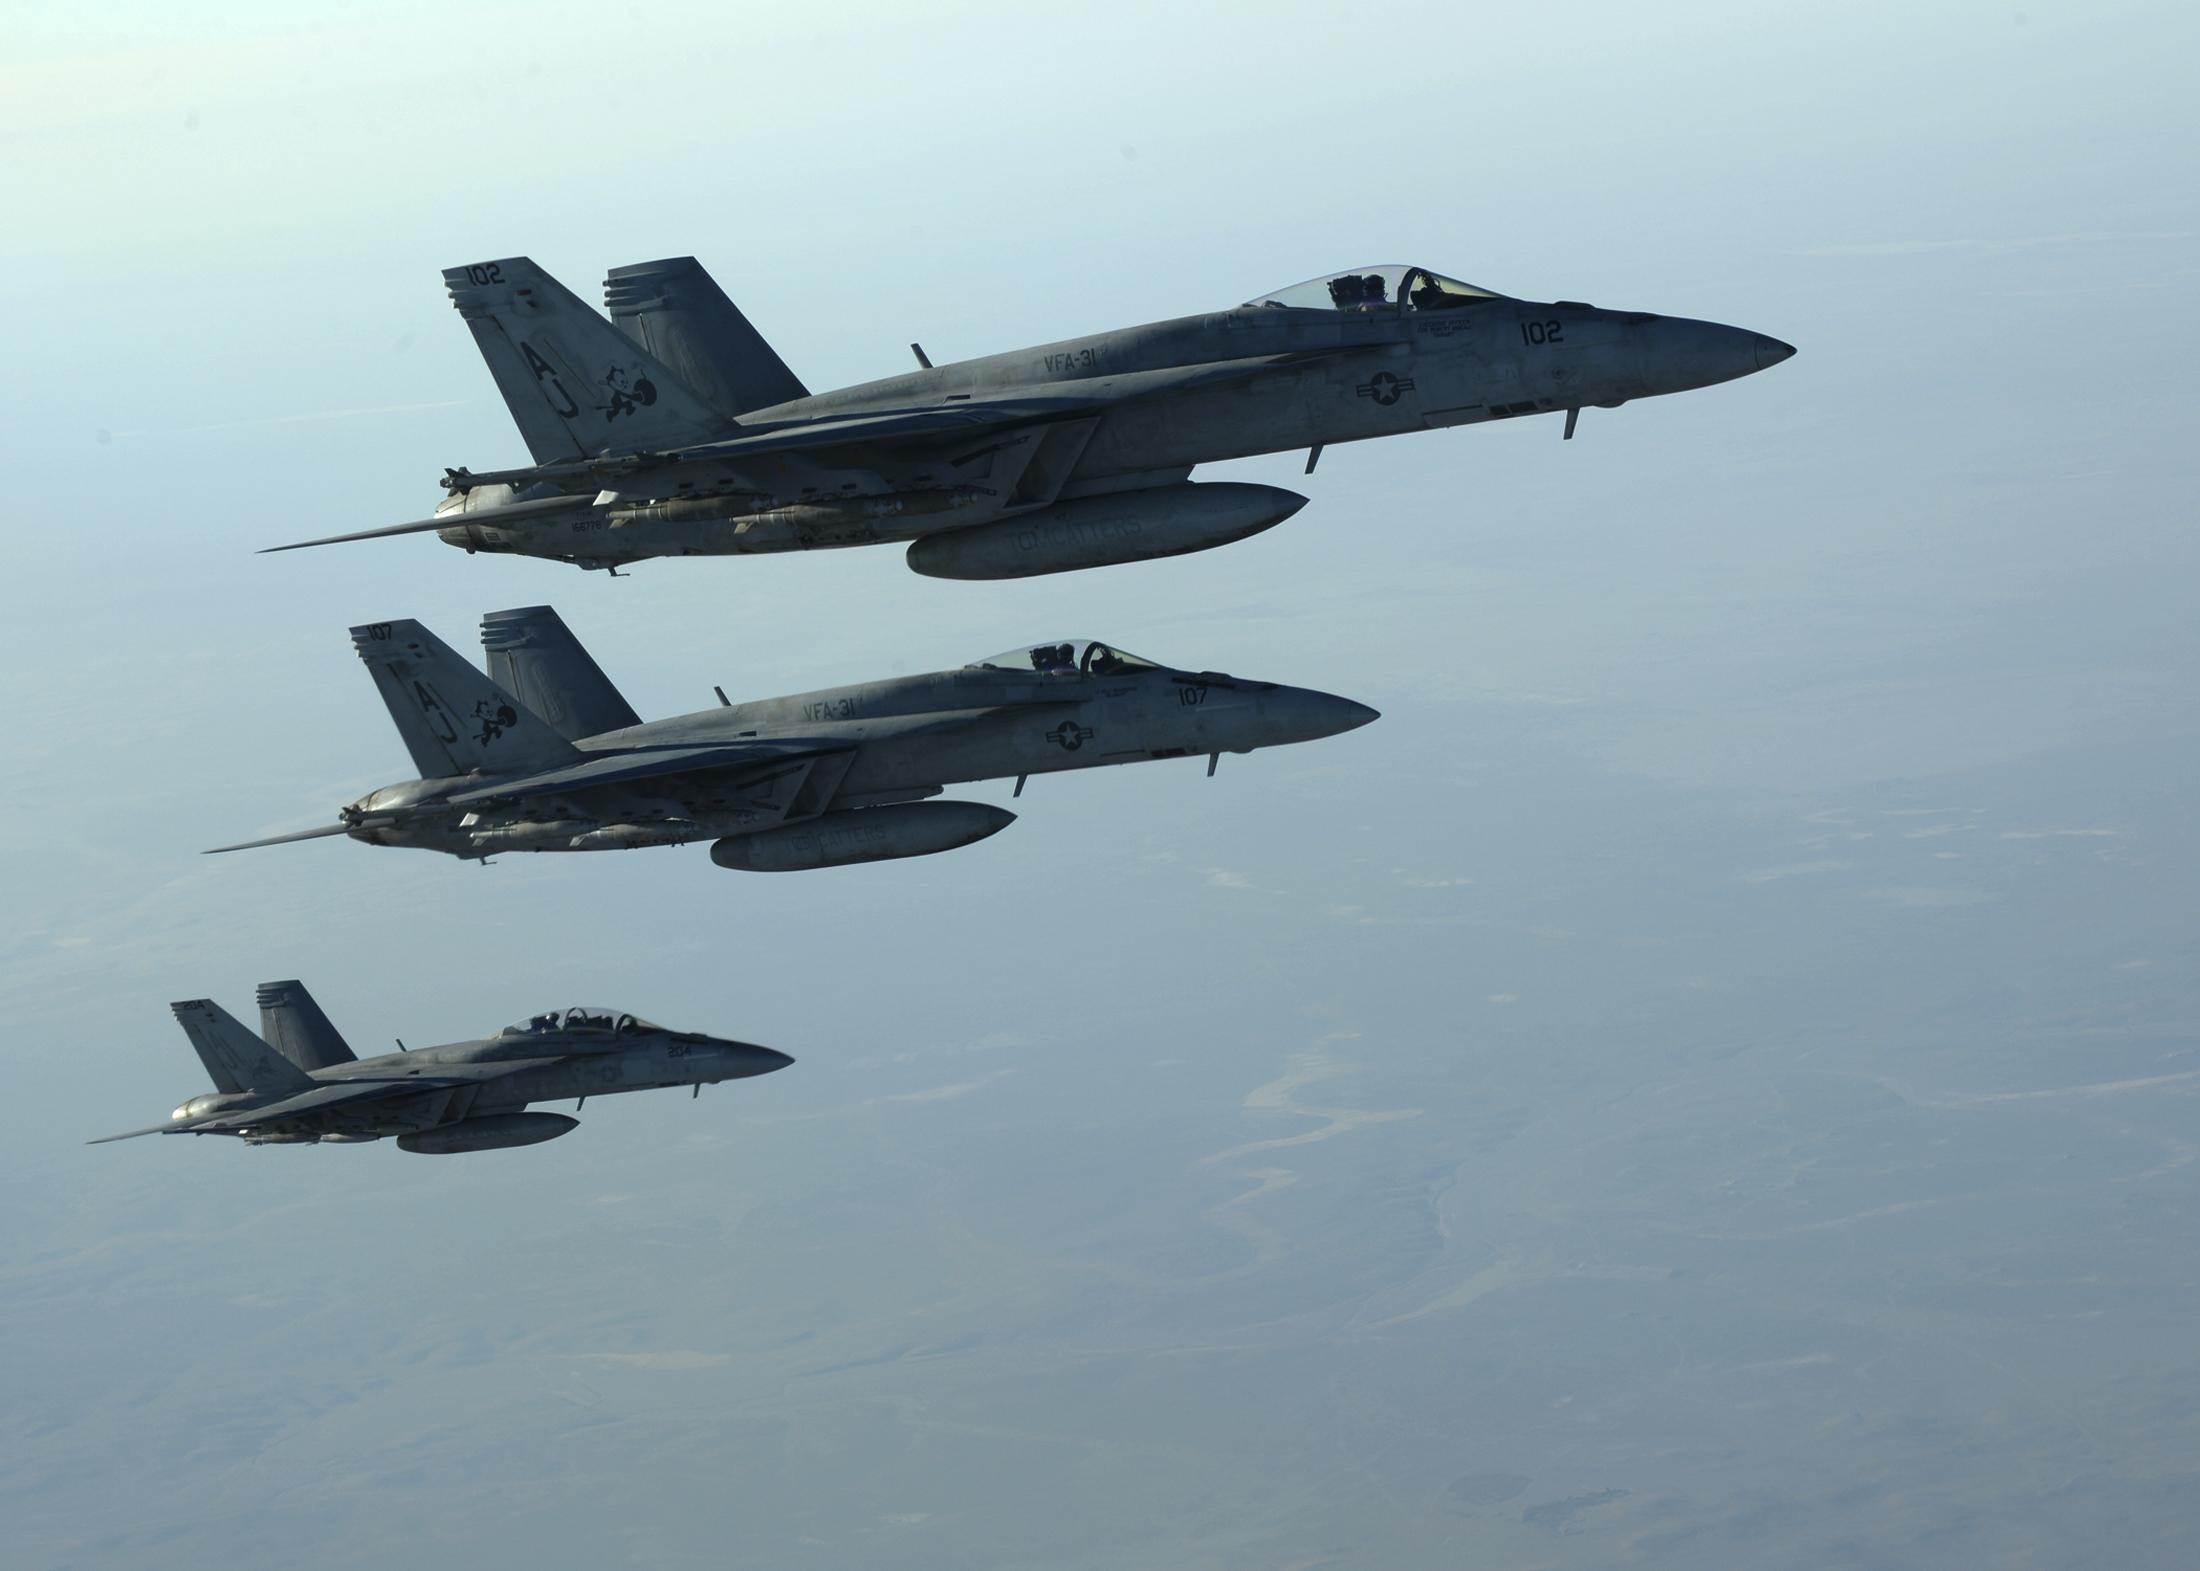 http://s1.ibtimes.com/sites/www.ibtimes.com/files/styles/embed/public/2015/10/28/boeing-f-18s-formation-over-northern-iraq.jpg